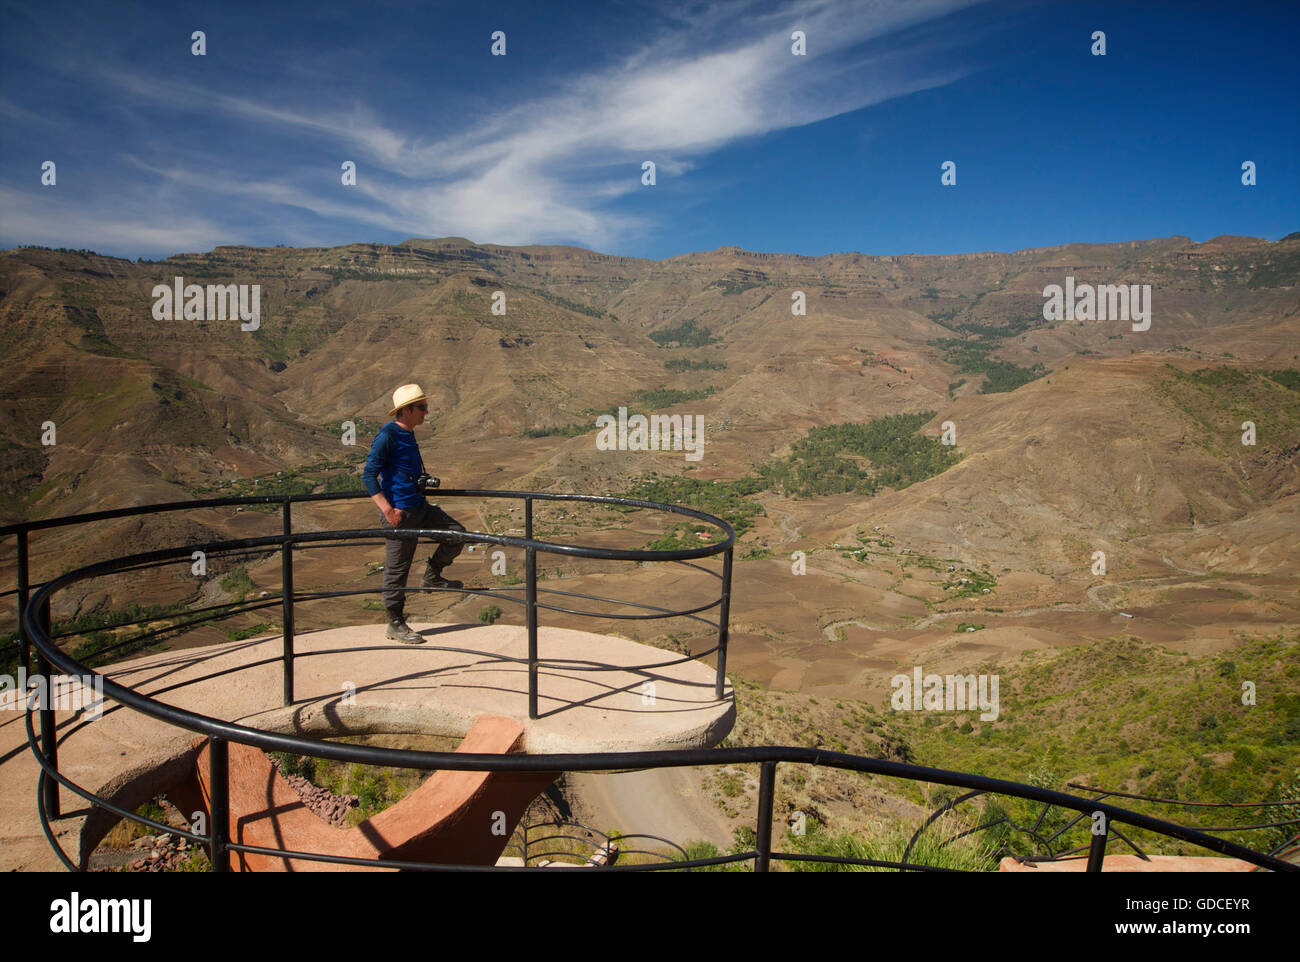 Western traveller taking in the view from the top of the Ben Abeba restaurant, Lalibela, Ethiopia - Stock Image